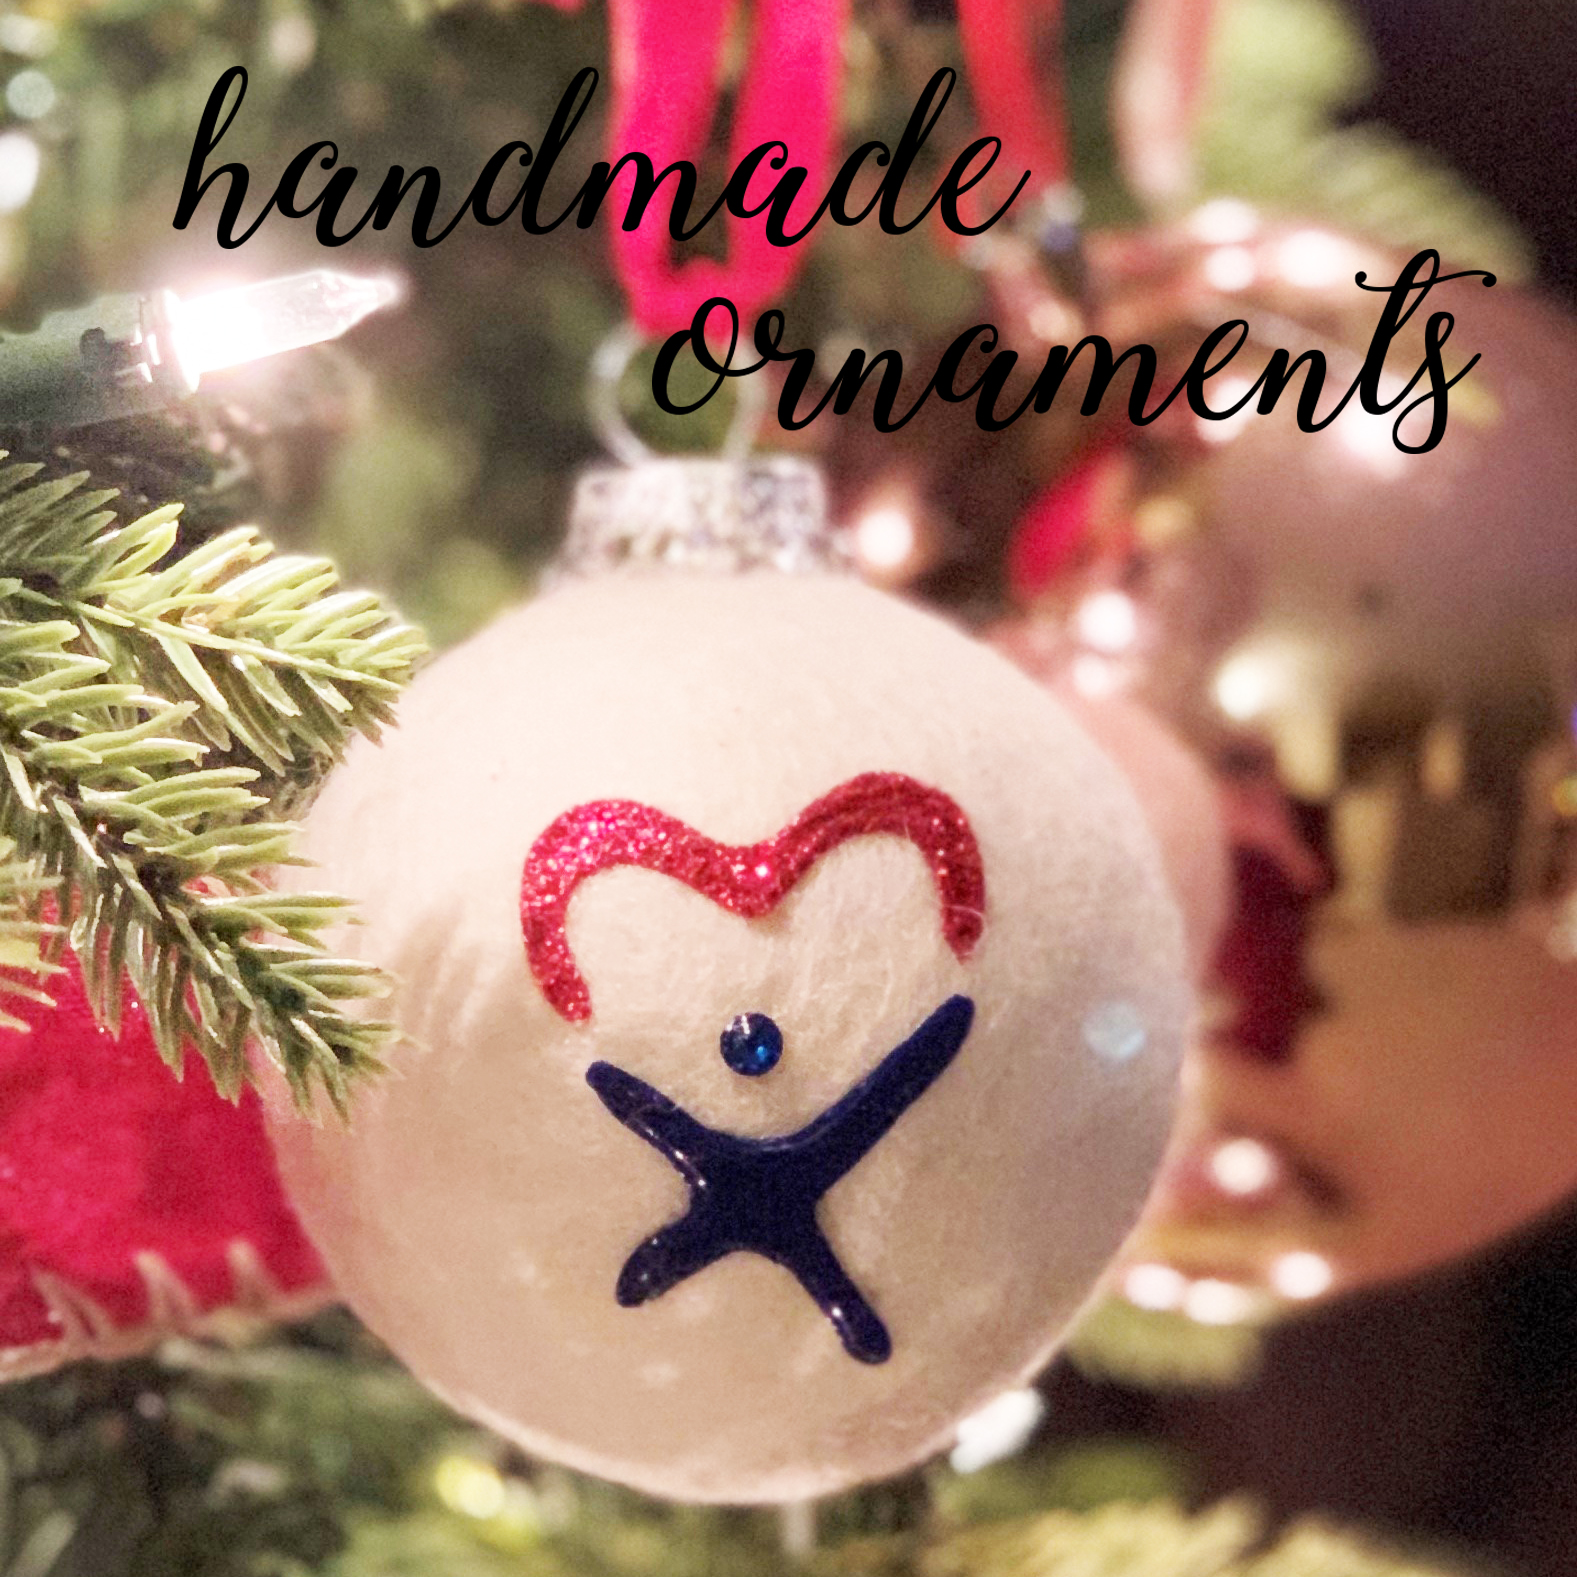 Handmade CASA Ornaments! Order yours by 12/14!